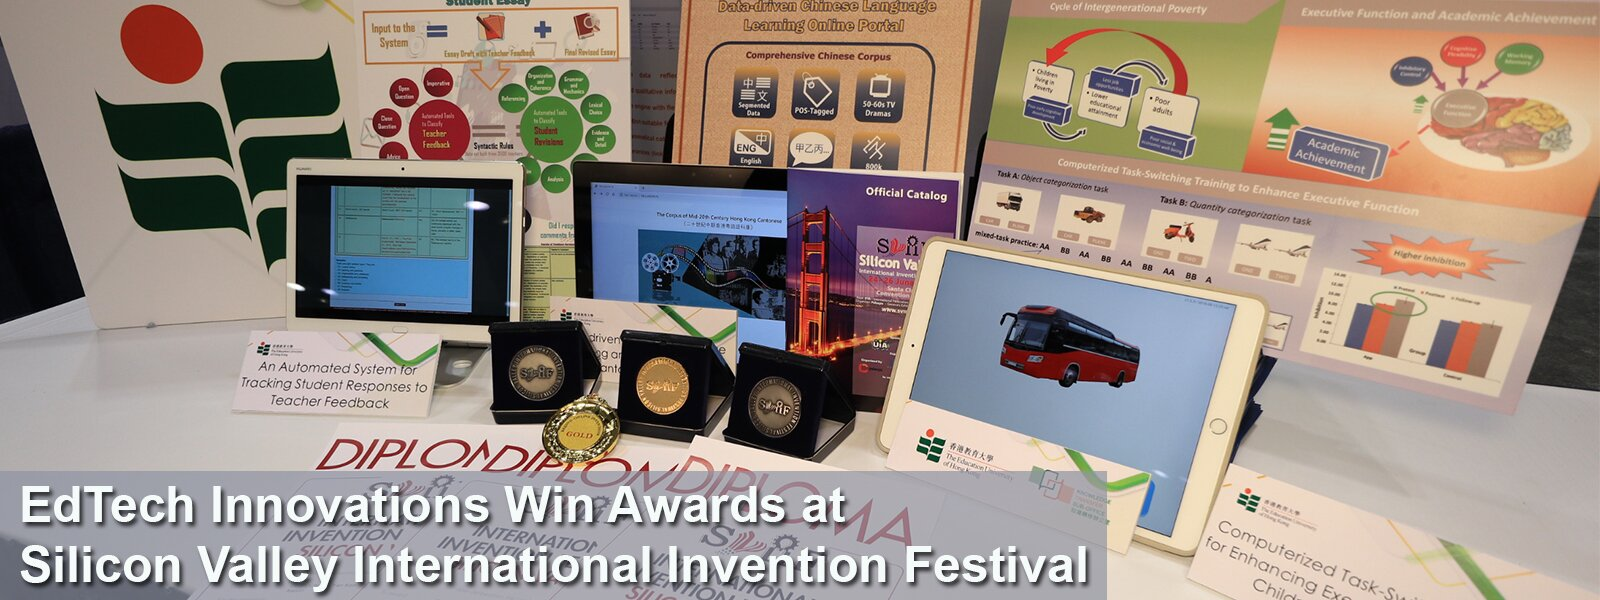 EdTech Innovations Win Awards at Silicon Valley International Invention Festival